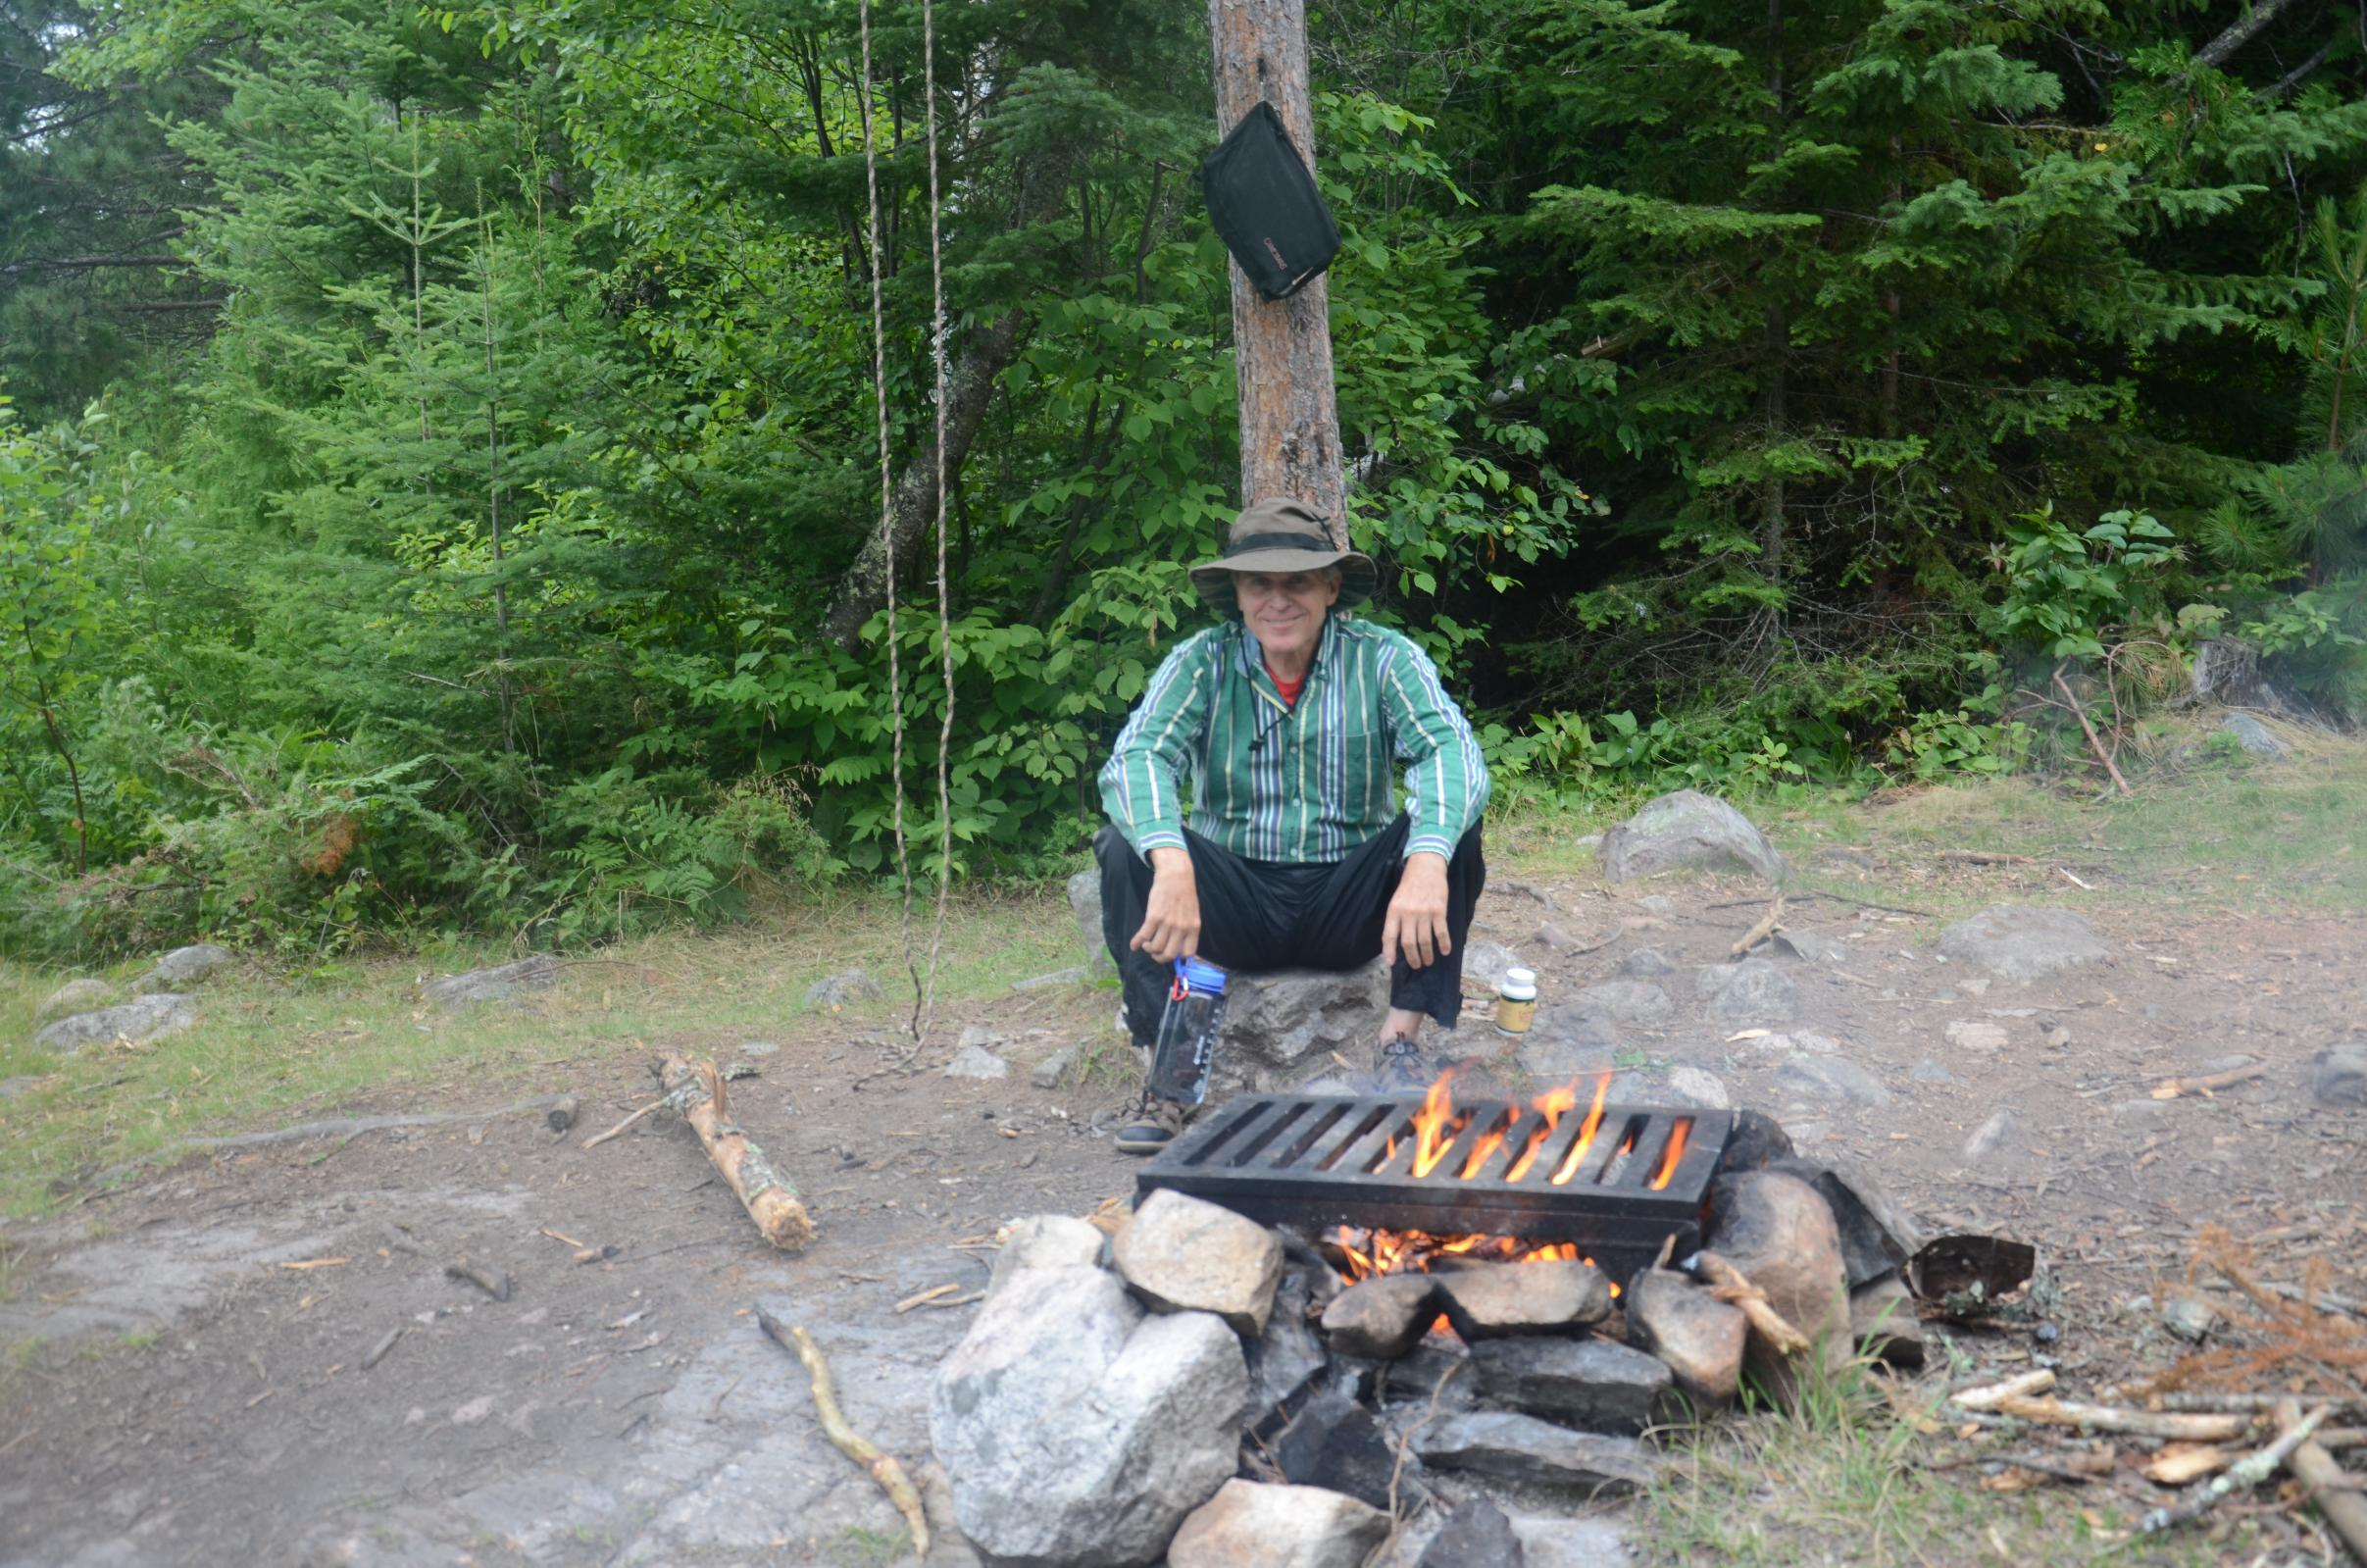 01 - Grandpa by the fire 7/16/2015